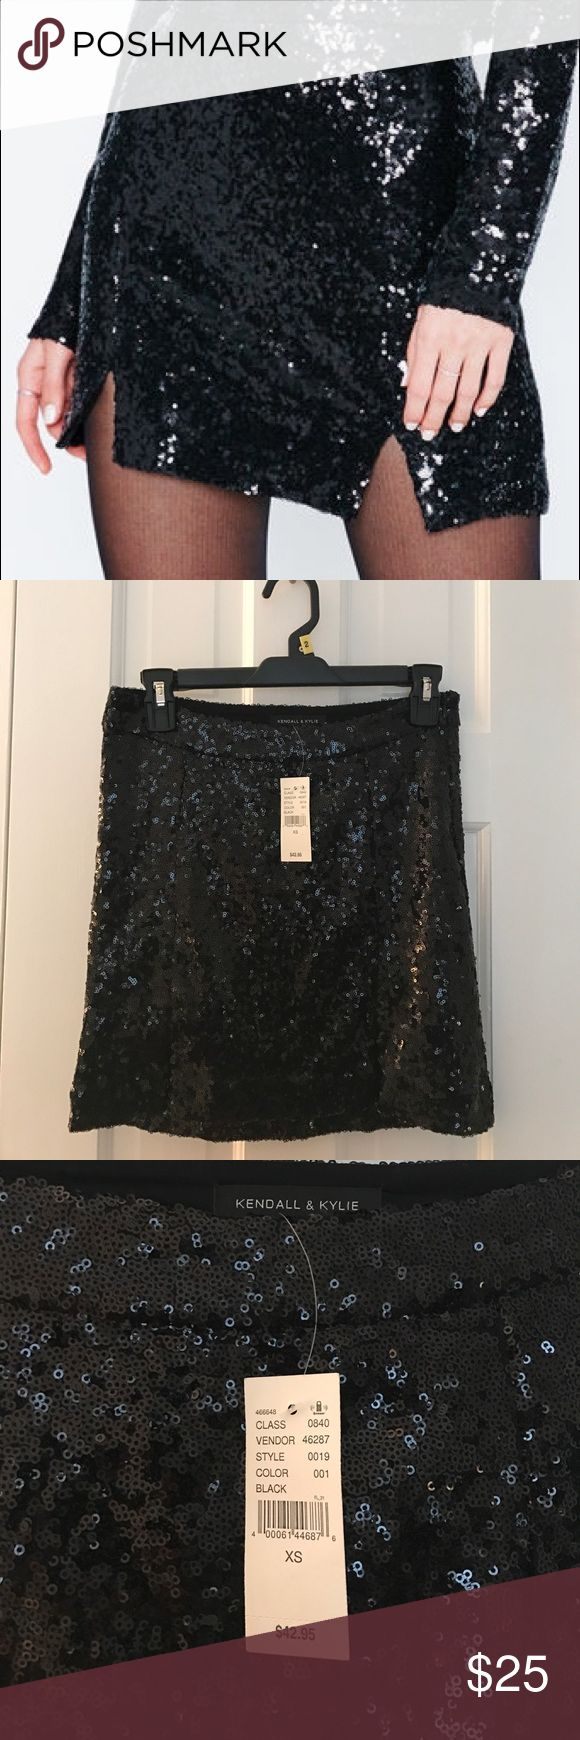 Black Sequin Mini Skirt - Kendall & Kylie Super cute sequin covered mini skirt that is too small for me but deserves to be shown off! XS Kendall & Kylie Skirts Mini